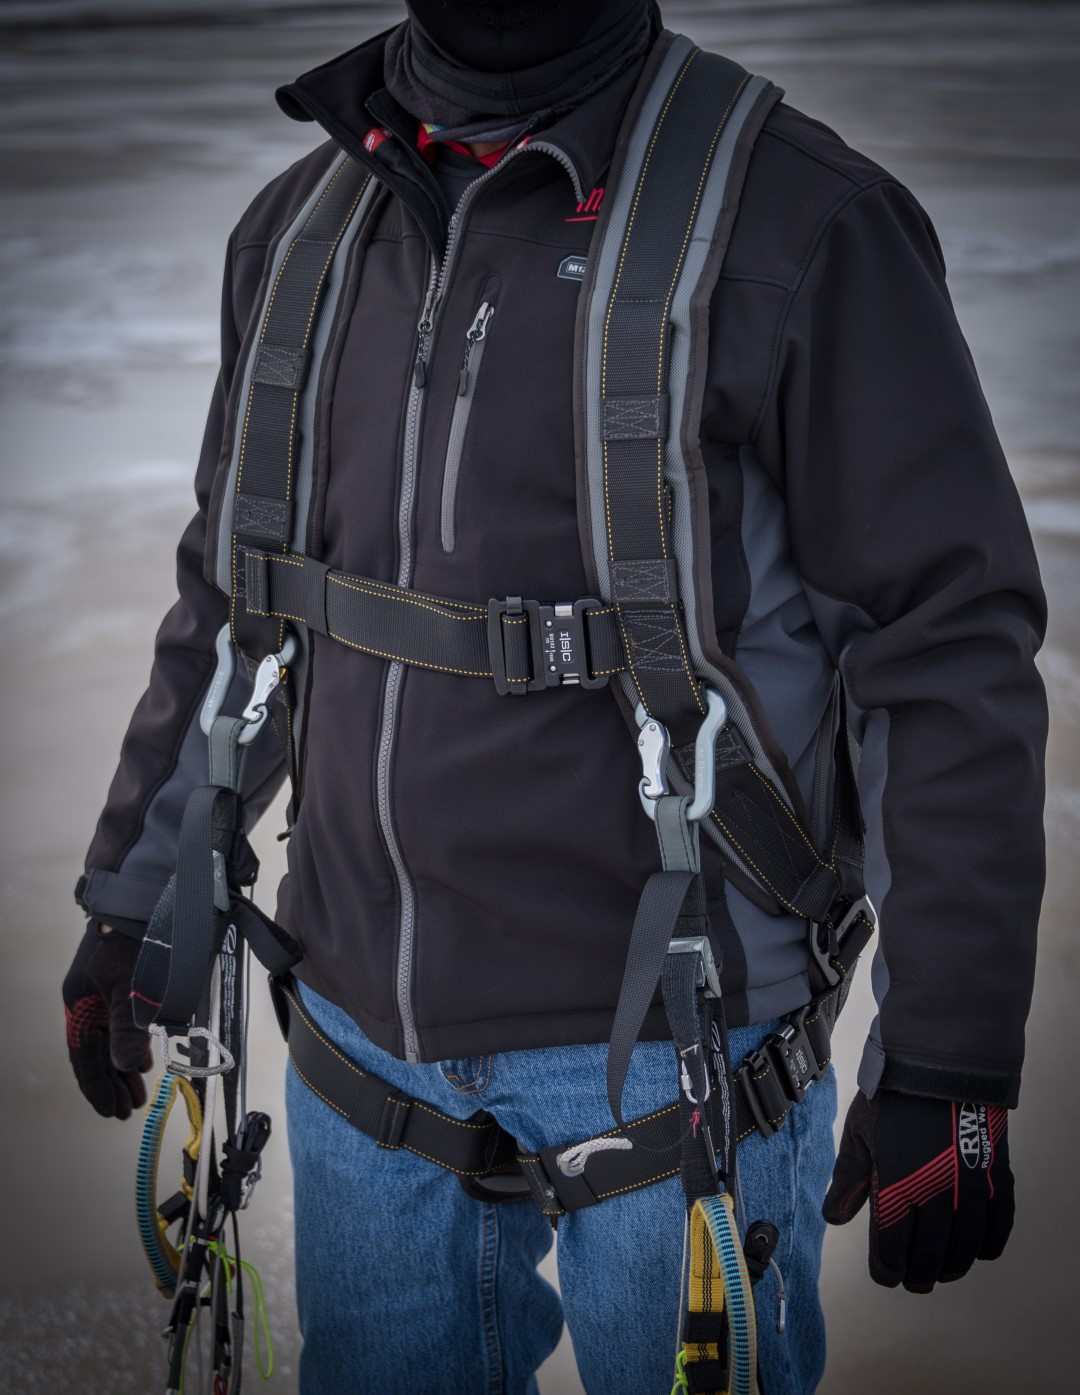 Kiting Harness For Paramotor Powered Paragliding Without